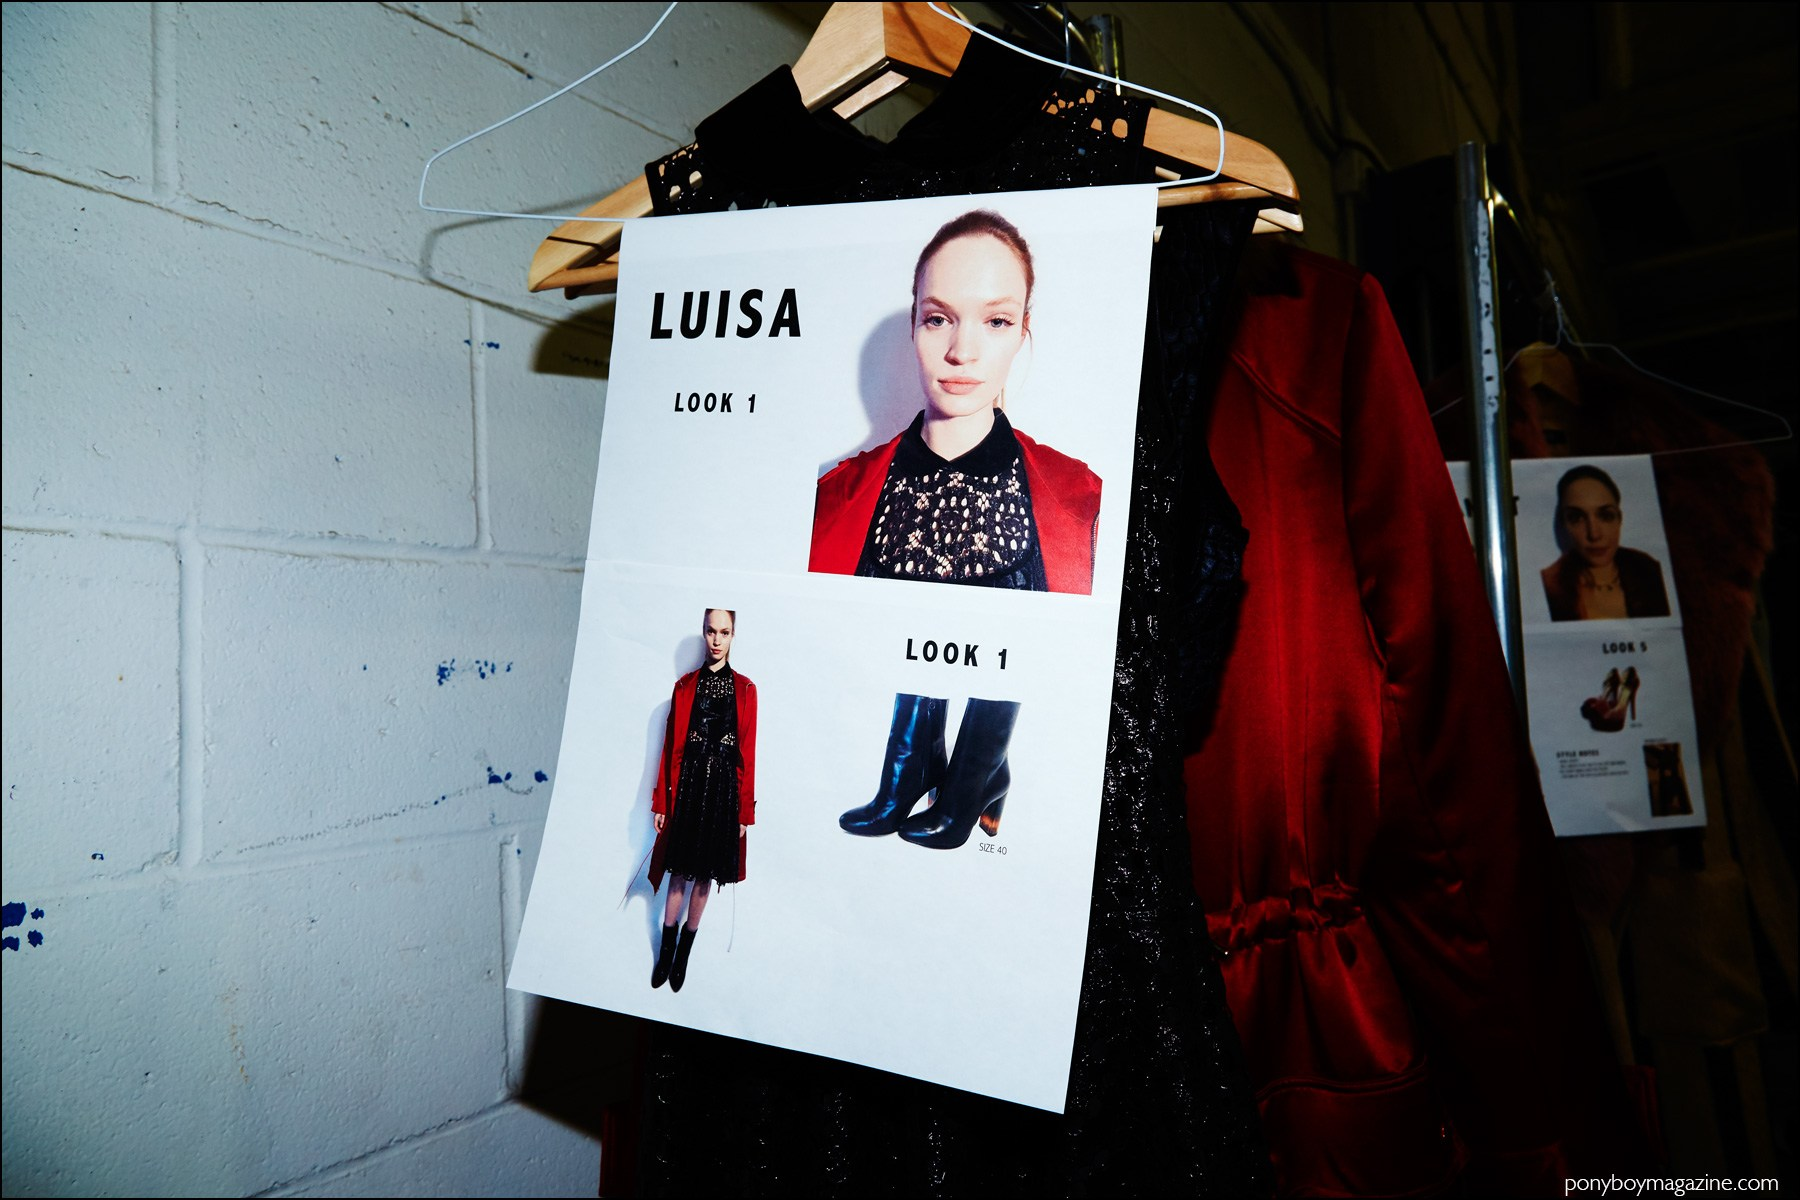 Dressing card for model Luisa Bianchin. Photographed backstage at Georgine F/W16 womenswear show. Photography by Alexander Thompson for Ponyboy magazine NY.